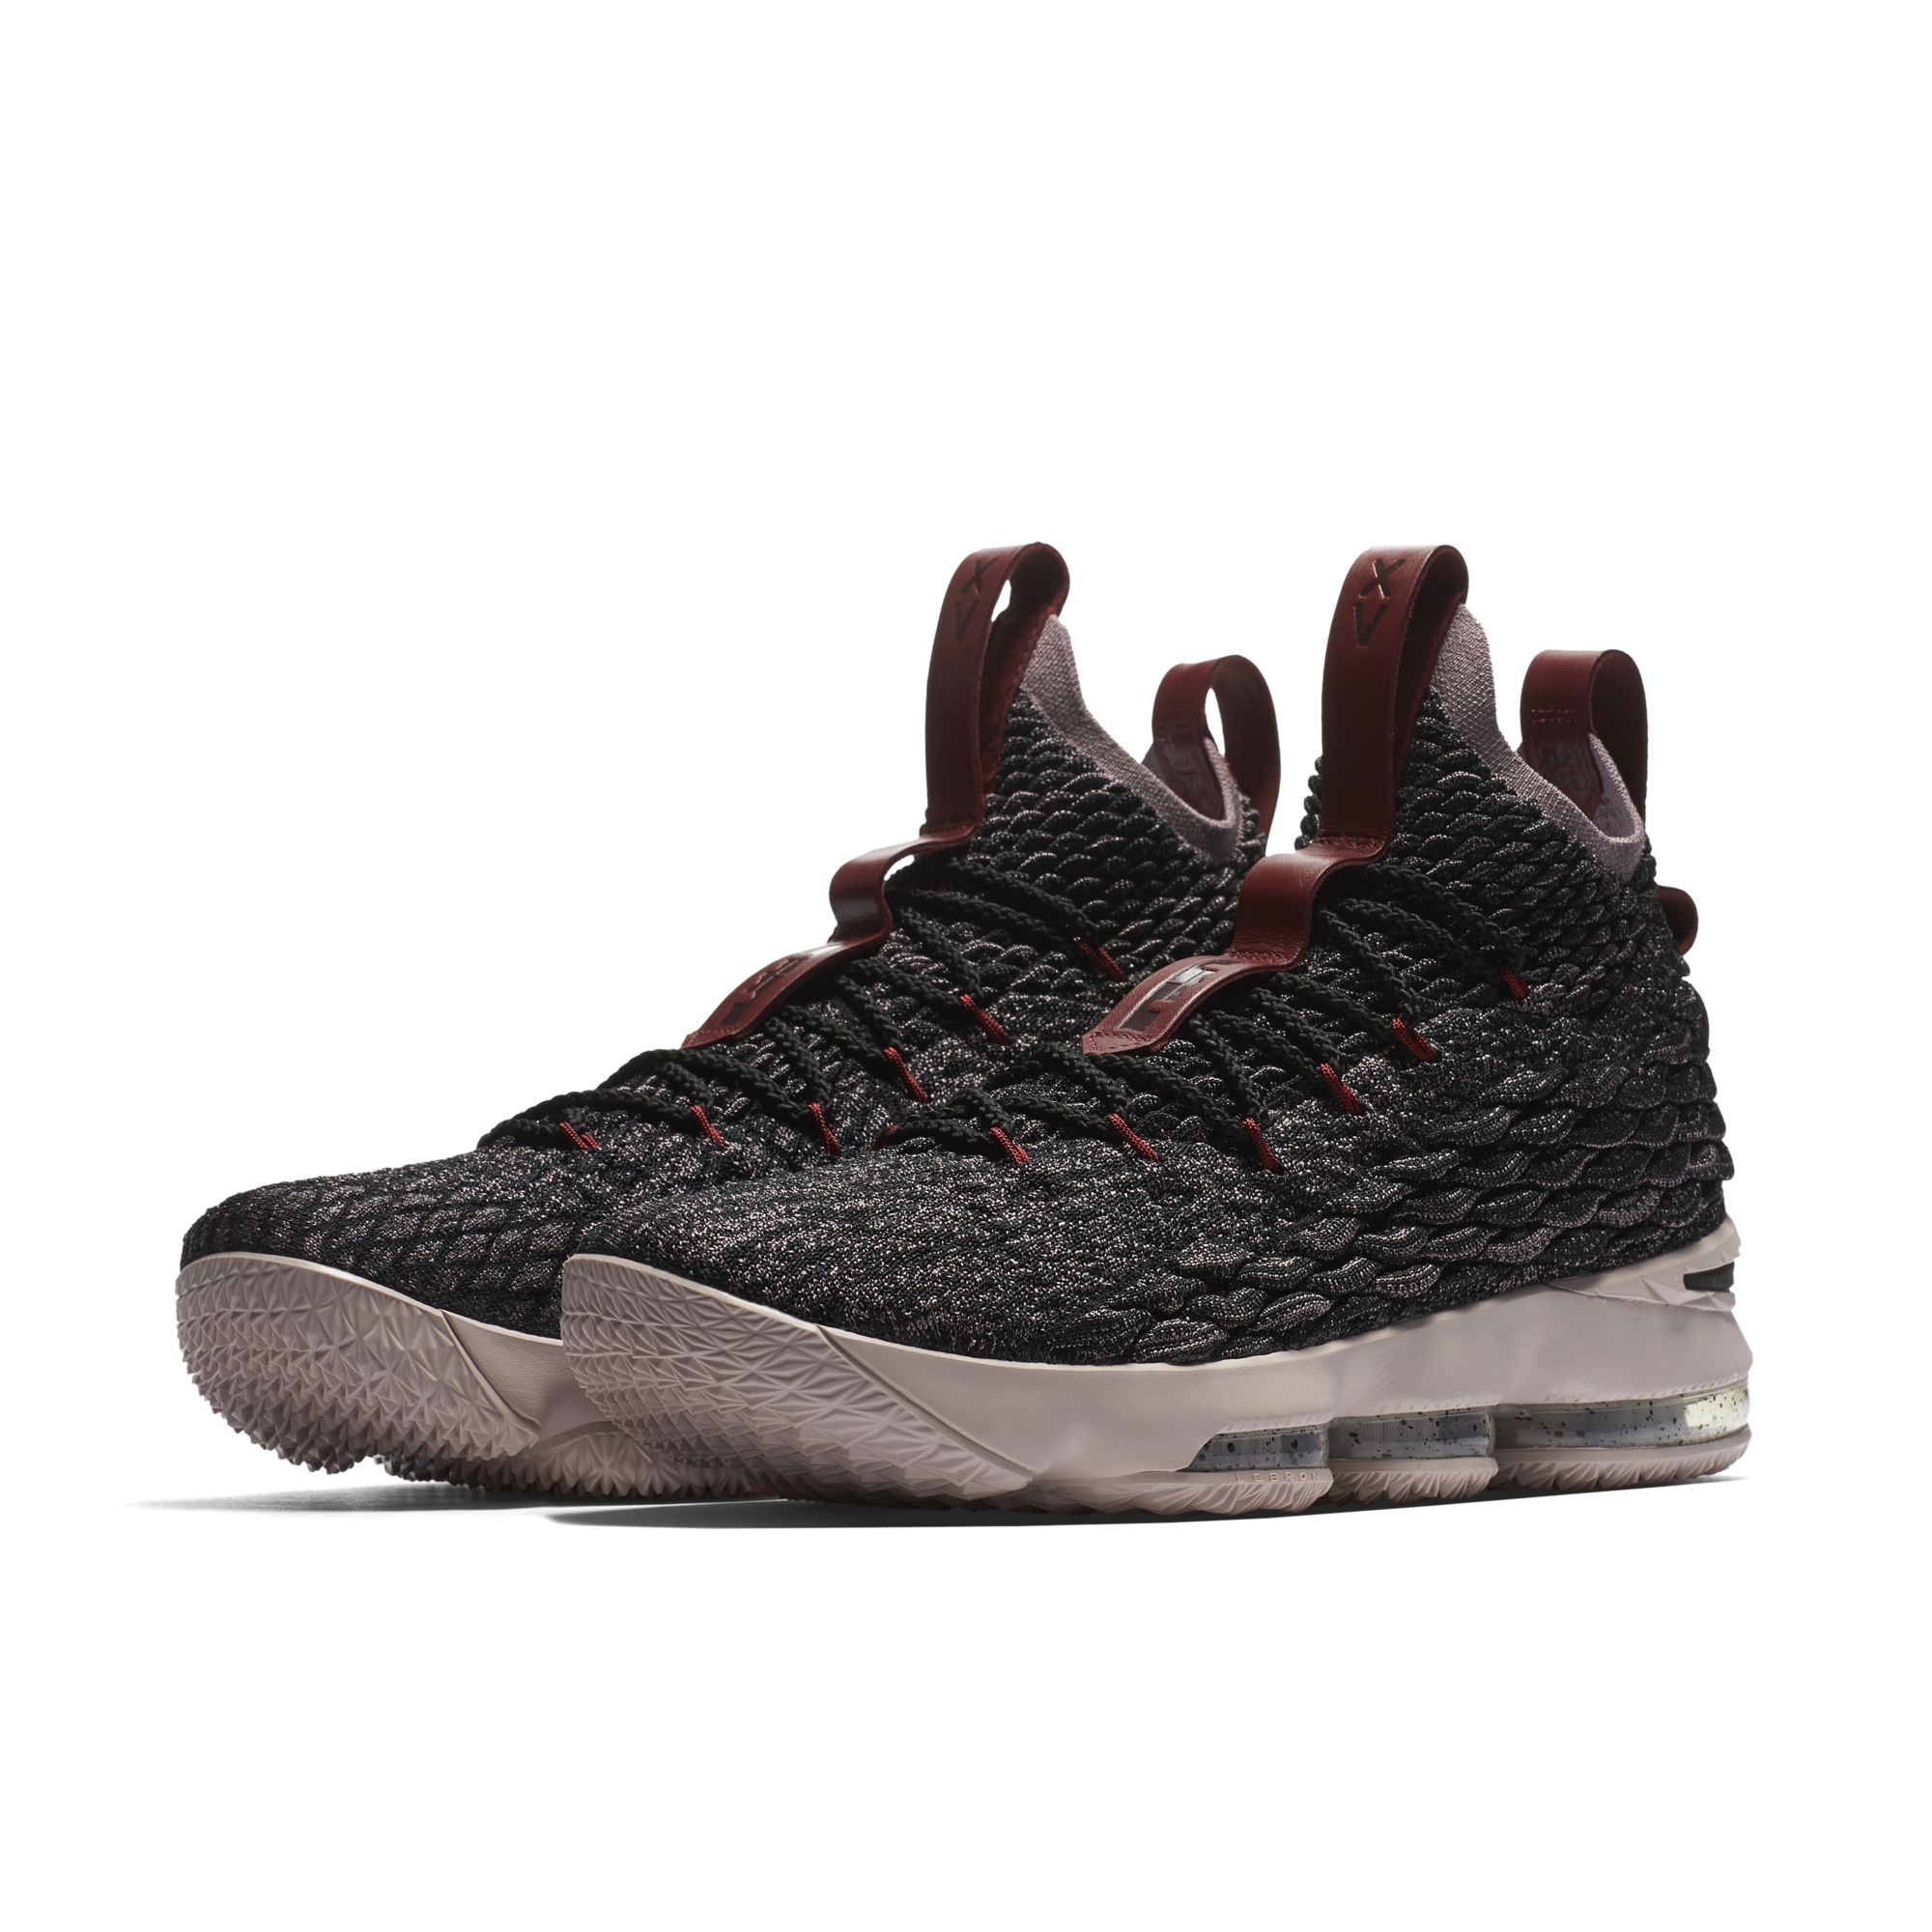 aea7e5664faf An Official Look at the Nike LeBron 15  Pride of Ohio  - WearTesters